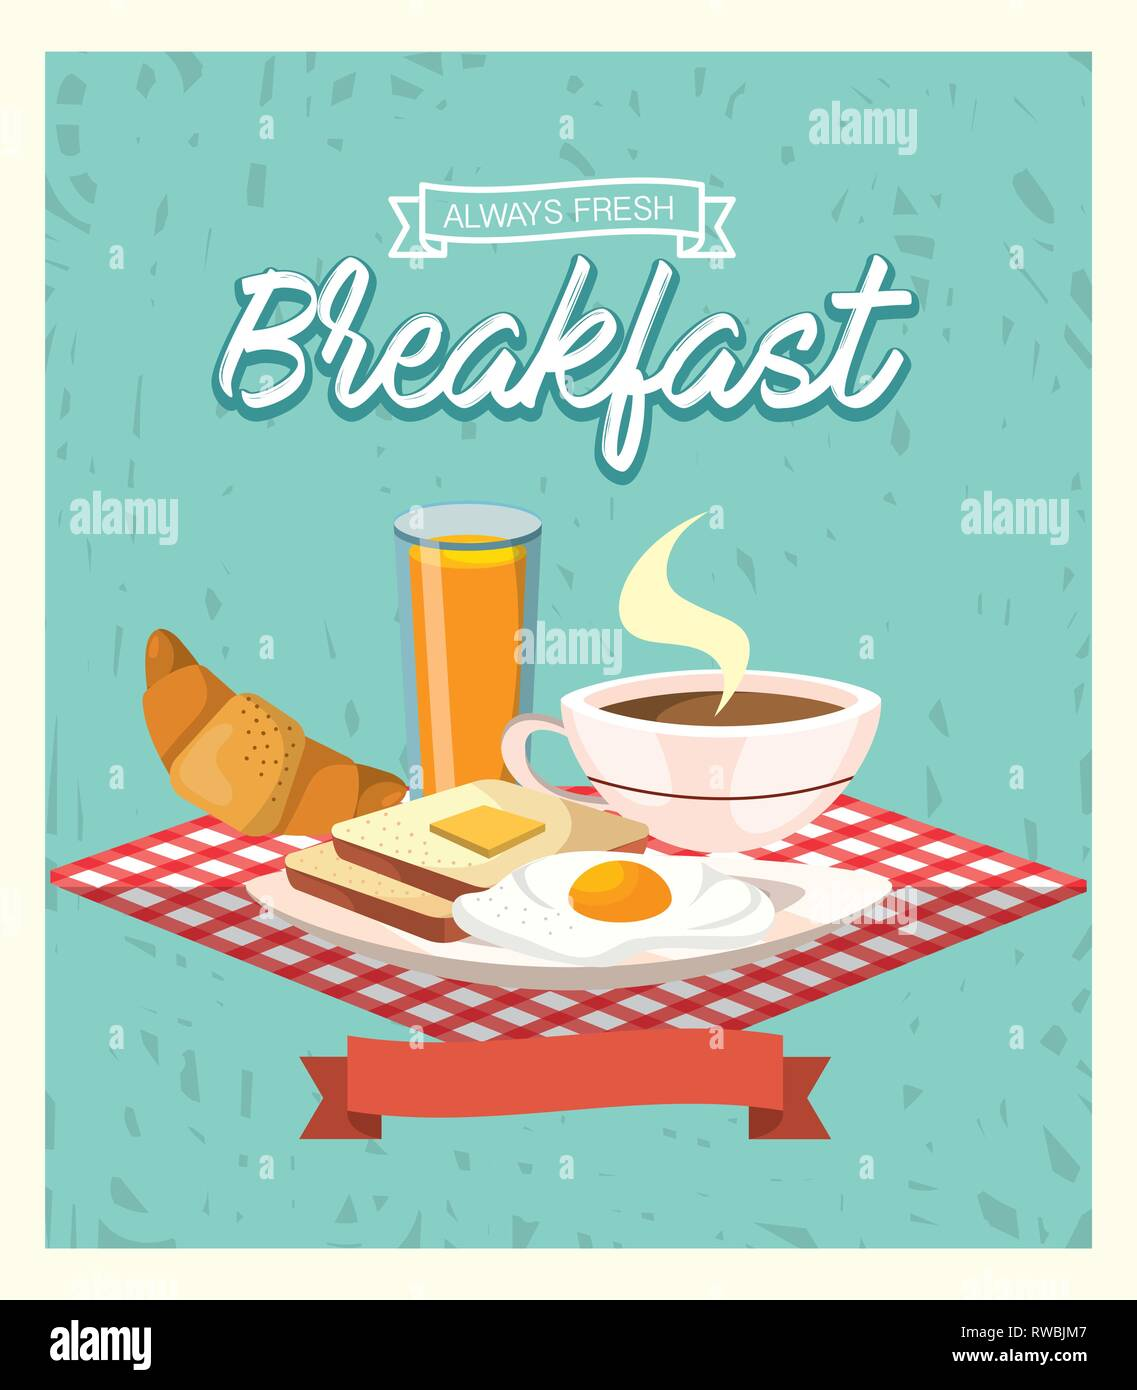 delicious breakfast with fried eggs and orange juice - Stock Image